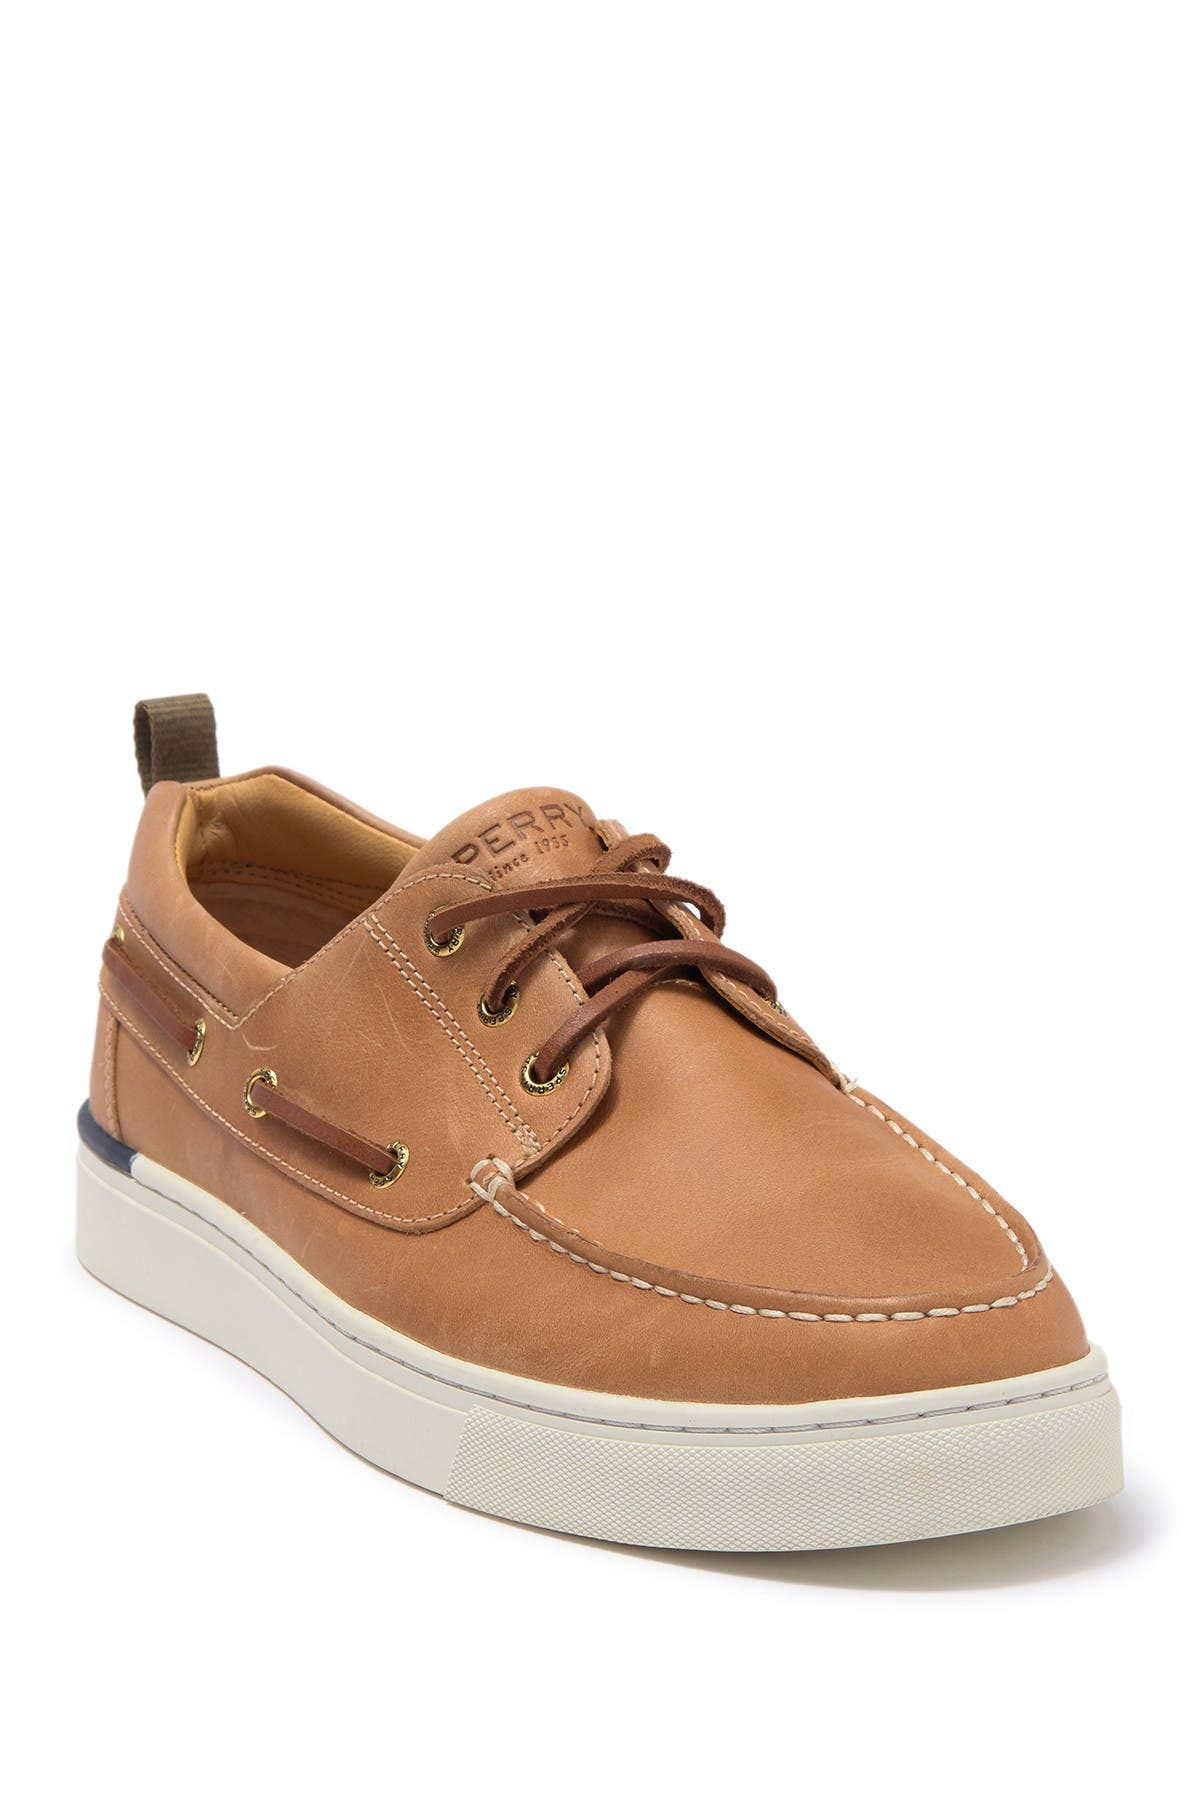 Image of Sperry Gold Cup Victura 3-Eyelet Leather Sneaker